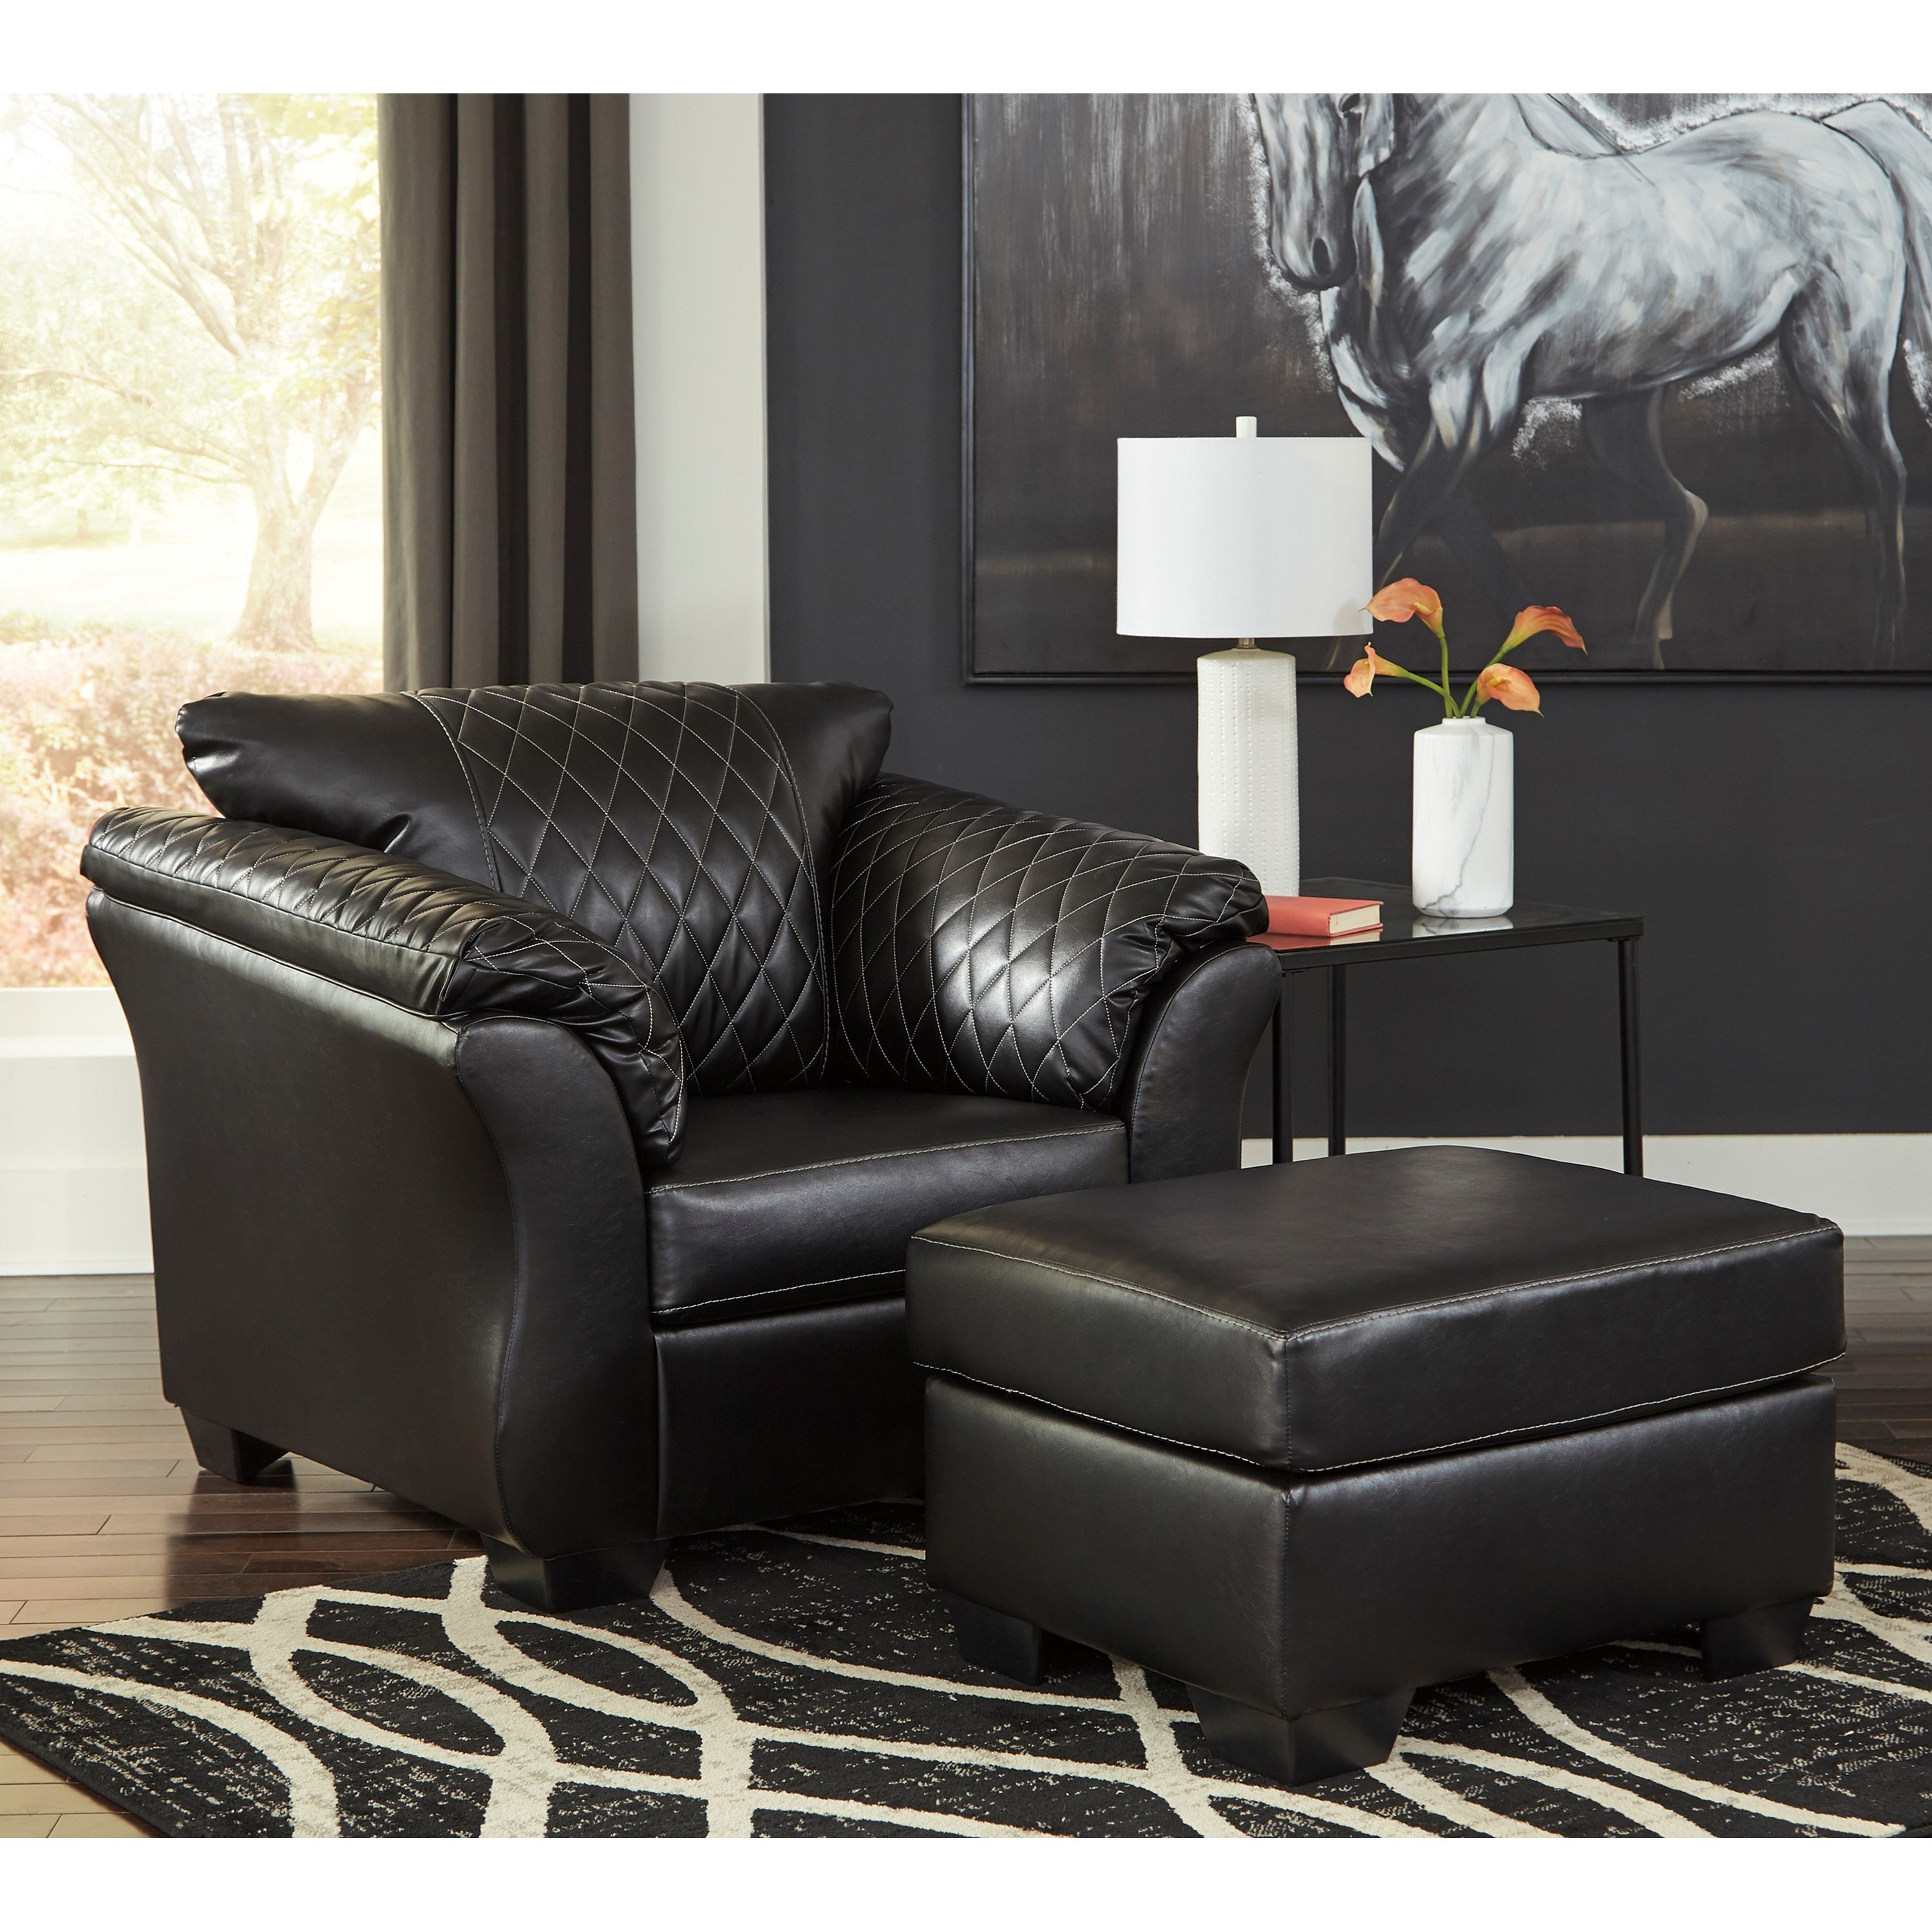 Chair And Ottoman Set Betrillo Contemporary Chair And Ottoman Set By Signature Design By Ashley At Royal Furniture